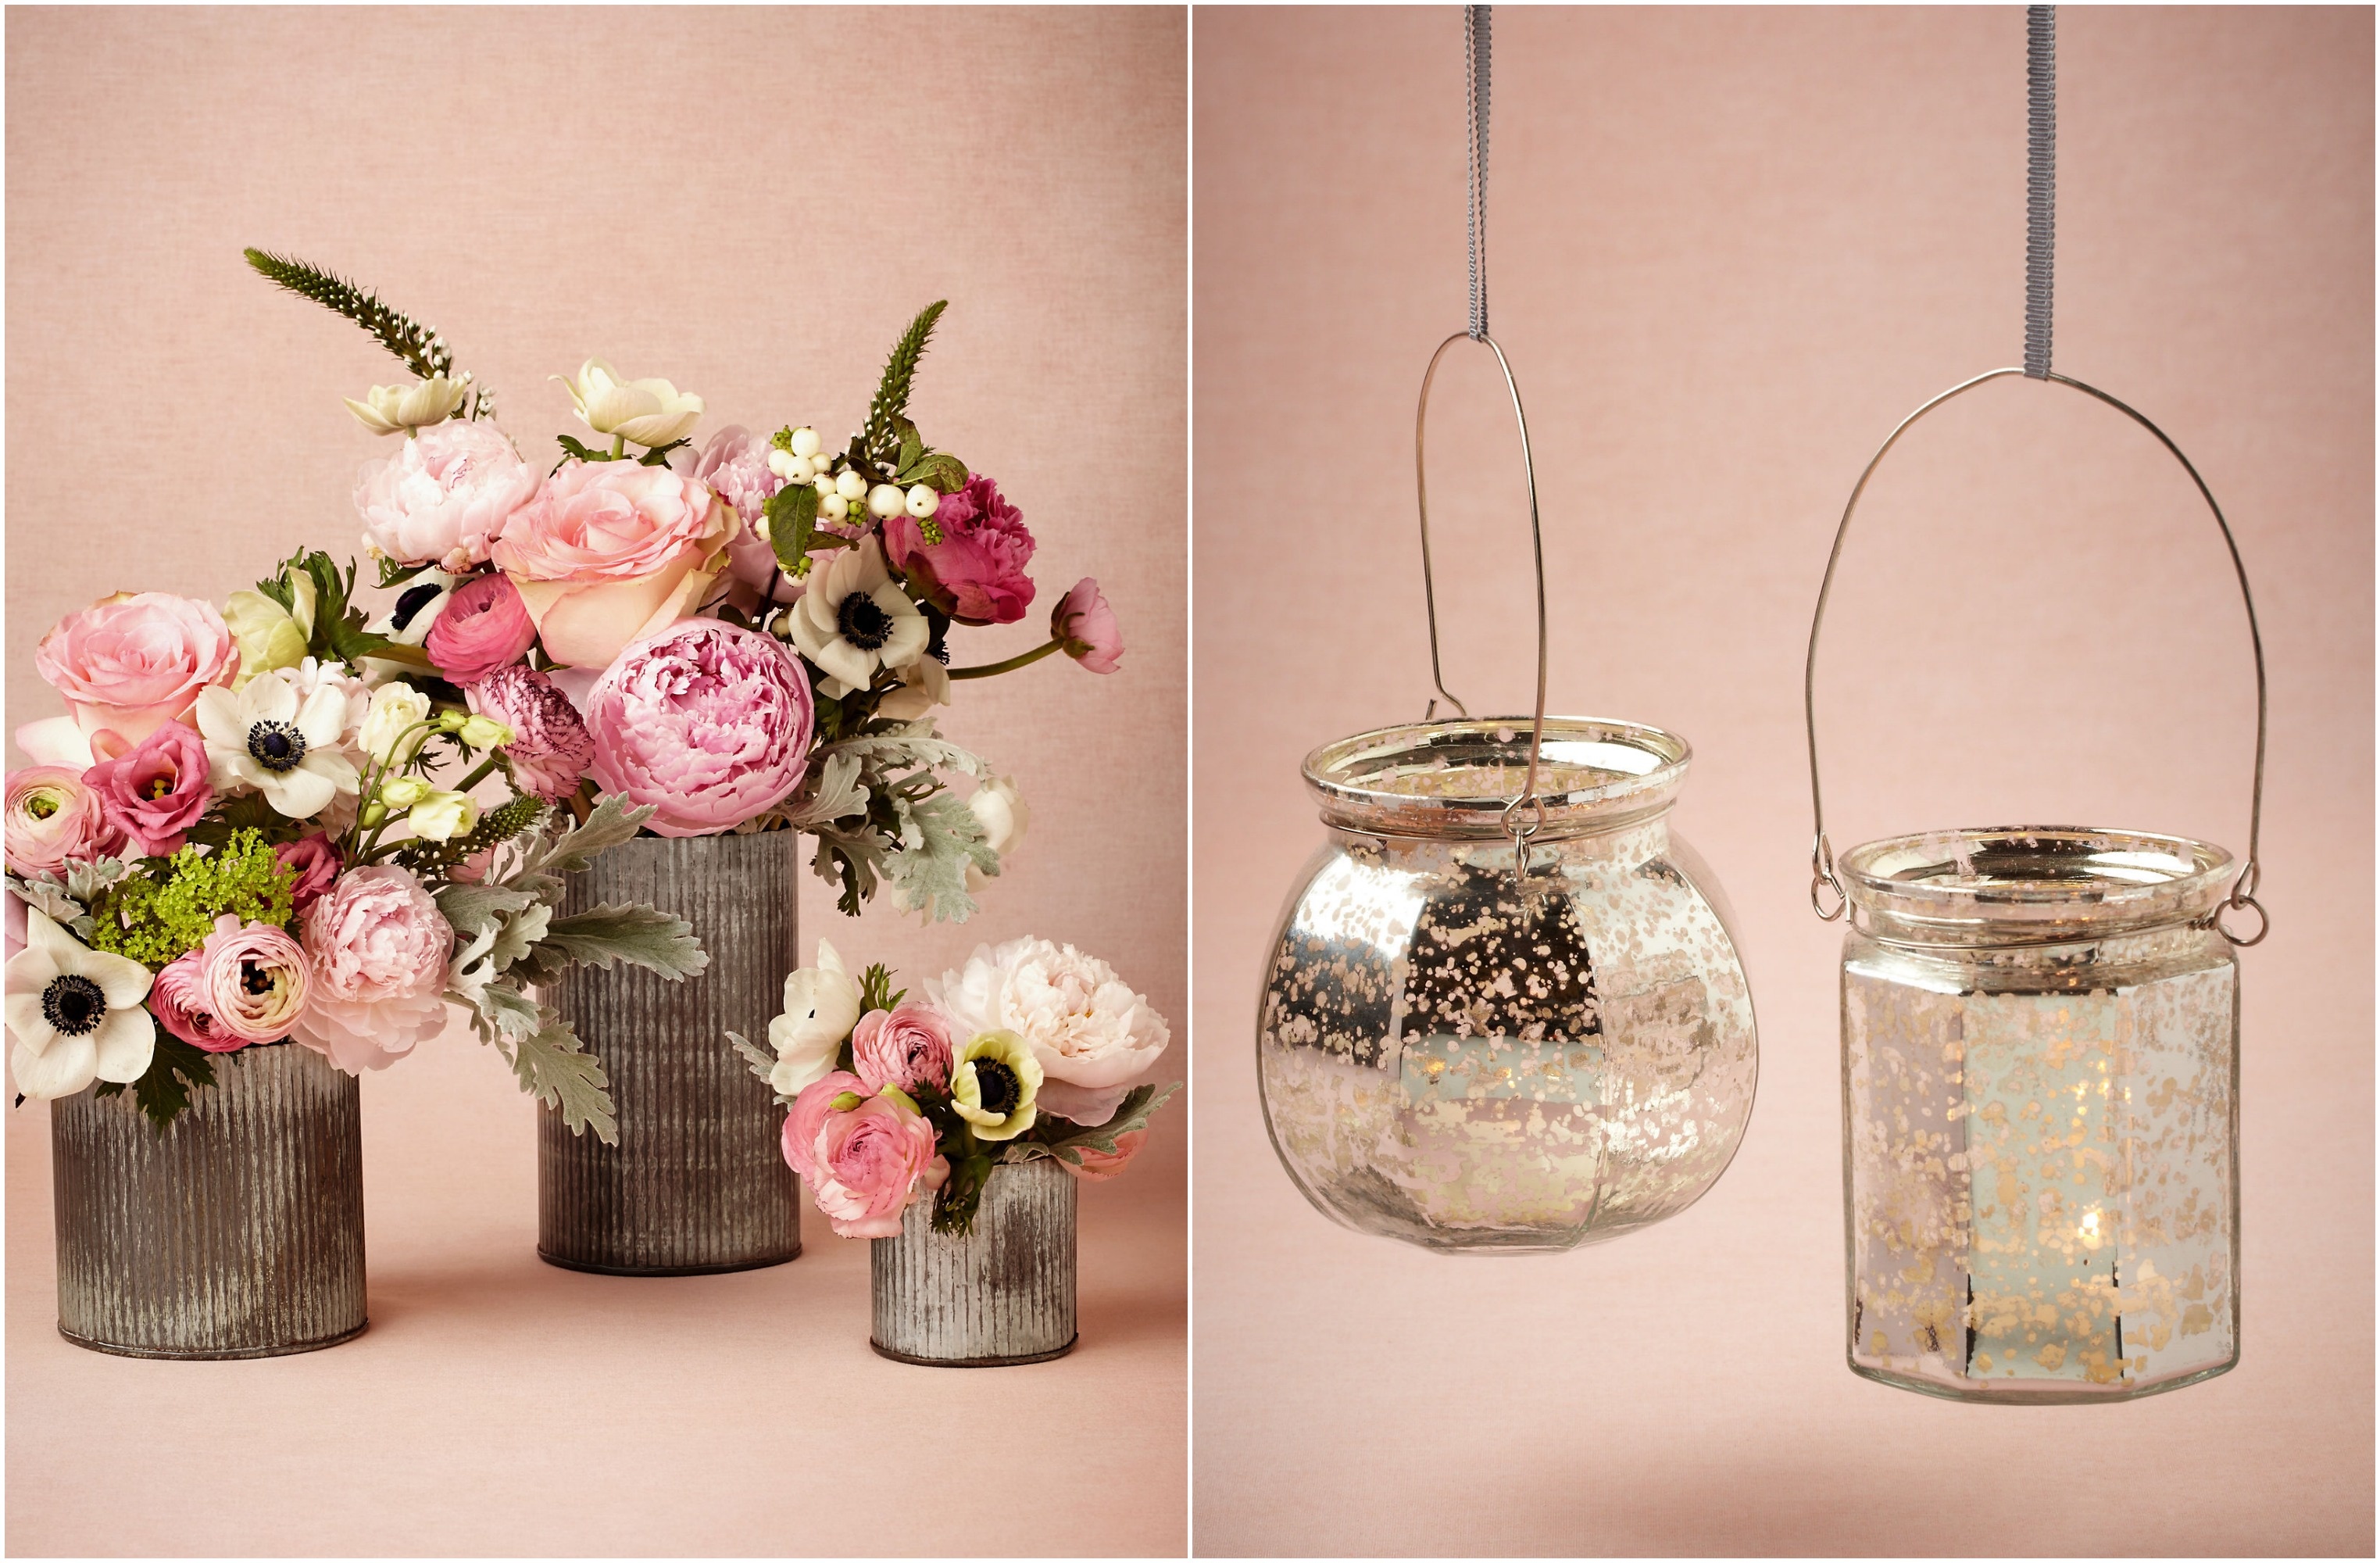 Summer wedding decorations from bhldn rustic chic